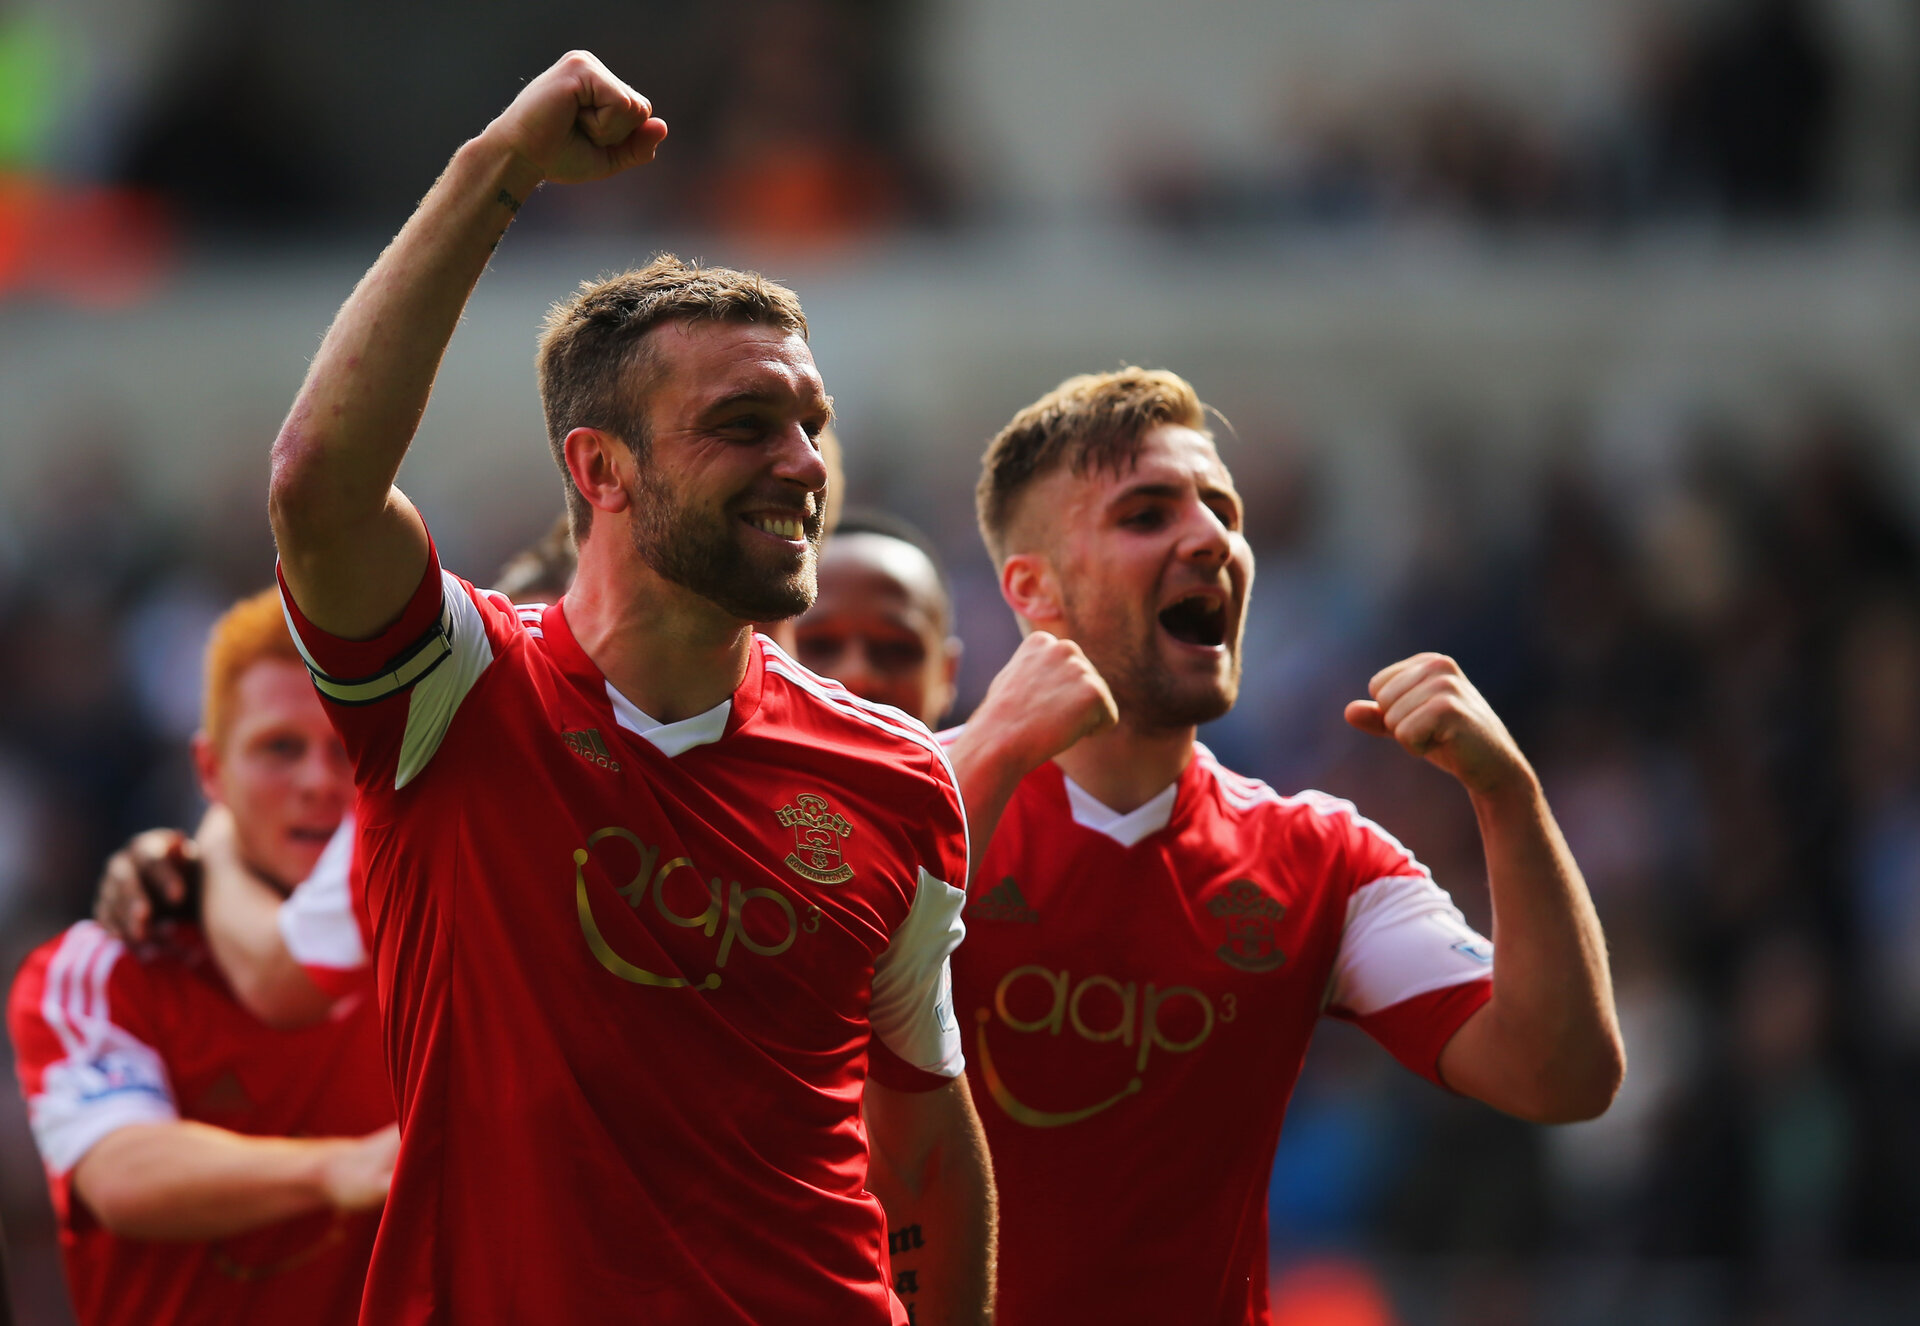 SWANSEA, WALES - MAY 03:  Rickie Lambert of Southampton celebrates with Luke Shaw (R) as he scores their first goal during the Barclays Premier League match between Swansea City and Southampton at Liberty Stadium on May 3, 2014 in Swansea, Wales.  (Photo by Clive Rose/Getty Images)